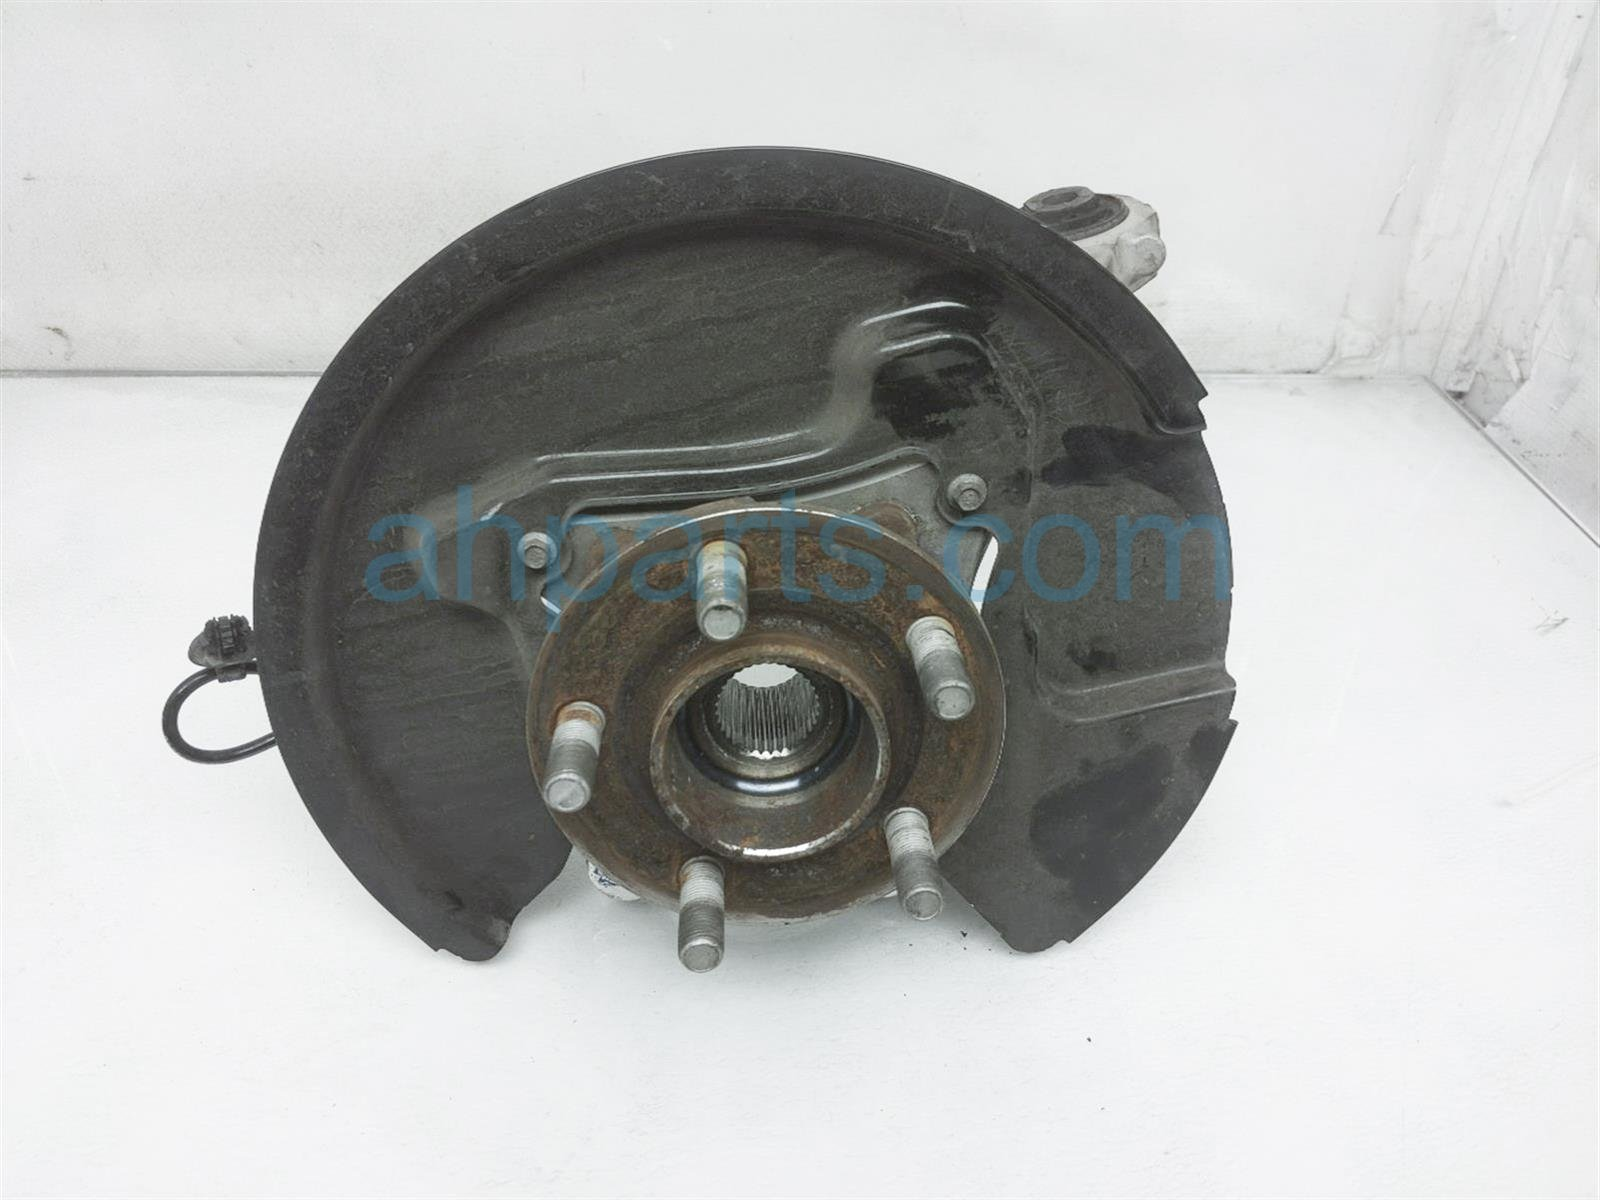 2017 Ford Mustang Axle Stub Rear Driver Spindle Knuckle Hub FR3Z 5B758 G Replacement